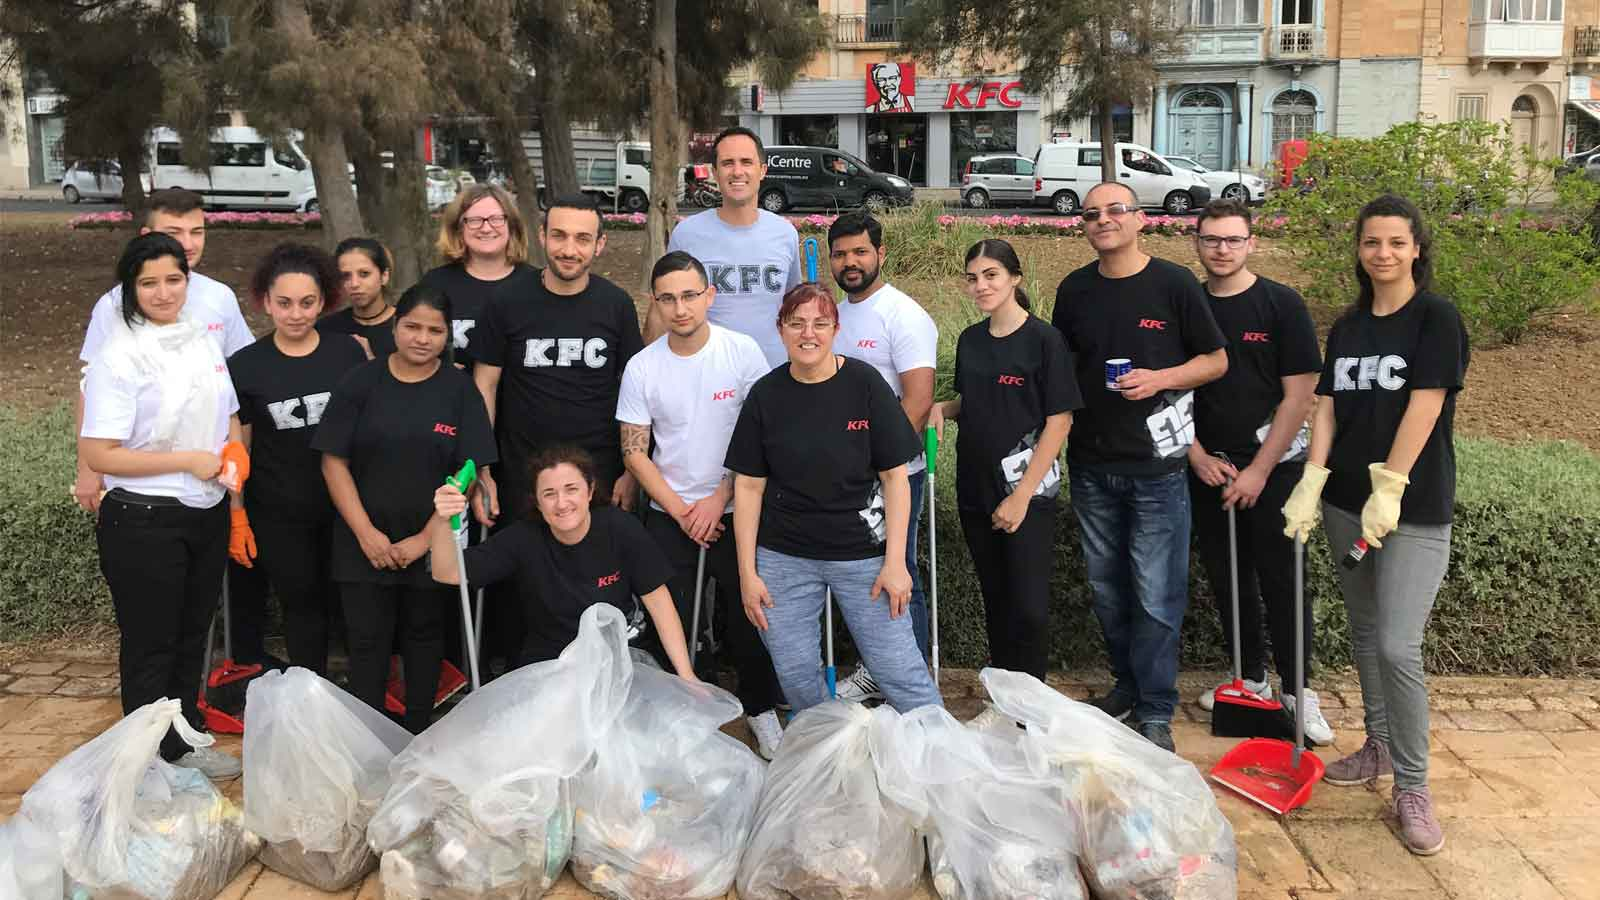 KFC Malta team clean up the neighbourhood